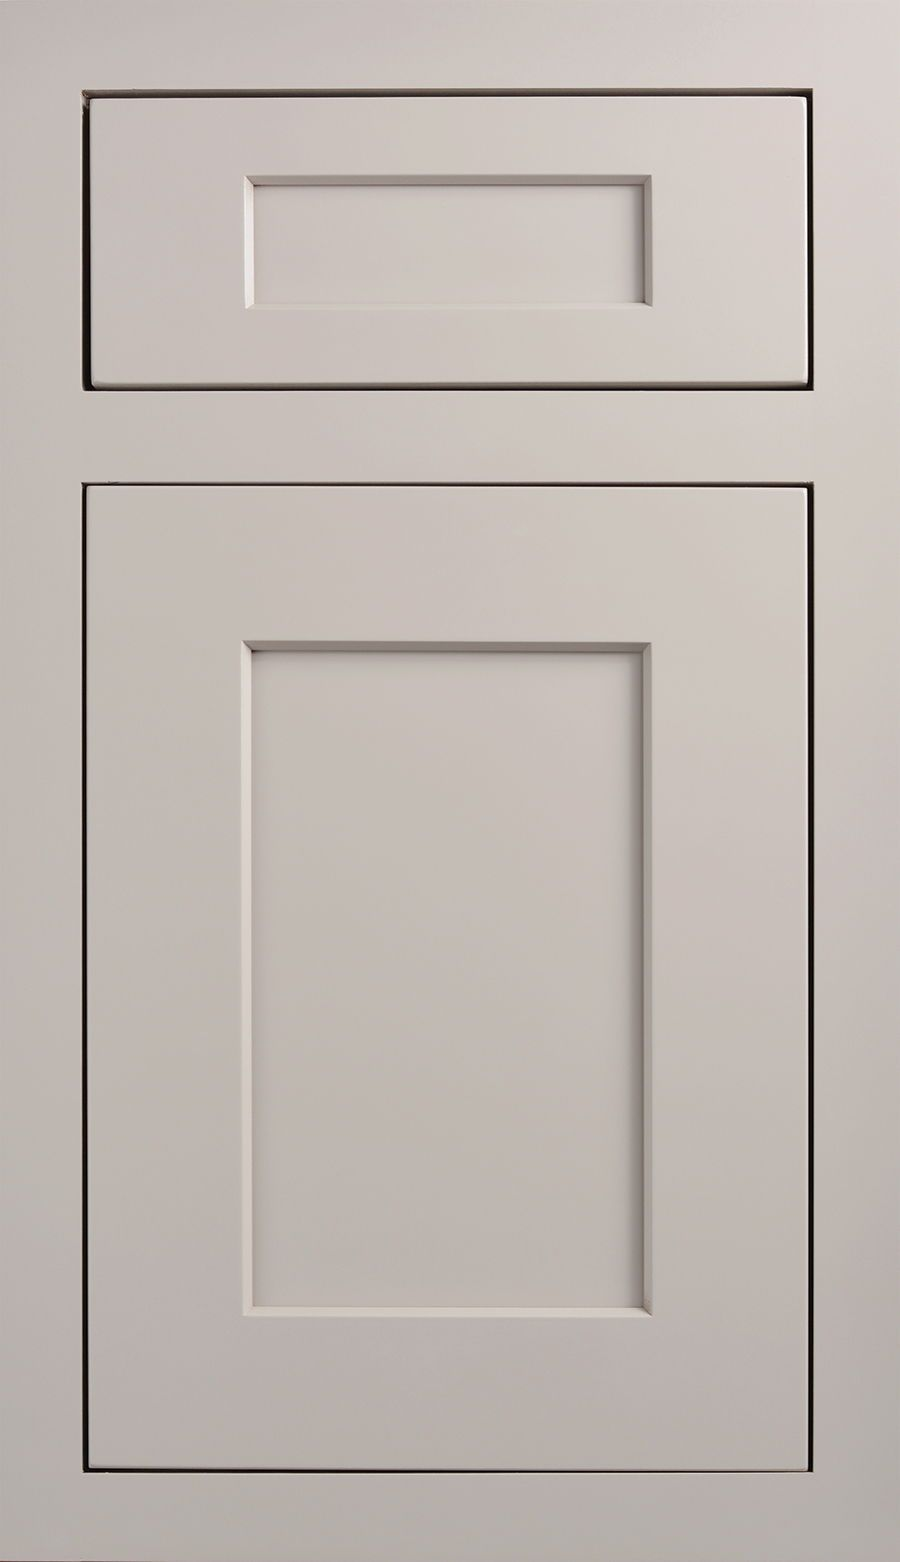 Dura Supreme Cabinetry Door Style Carson Inset Cabinet Door Style Shown In The Cashmere Painted Cabinet Door Styles Cabinet Doors Kitchen Cabinet Door Styles